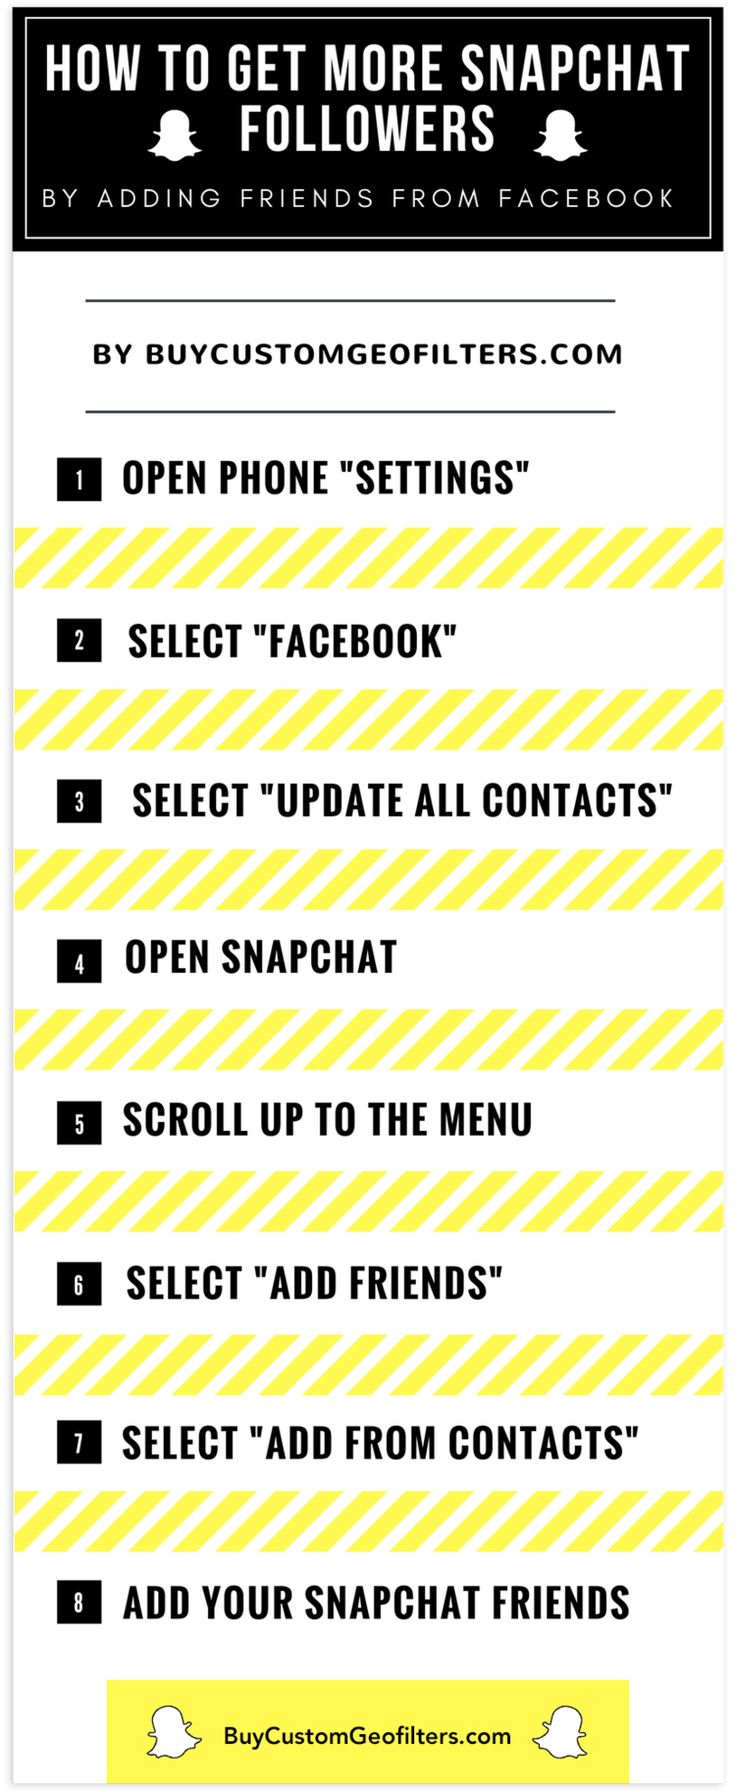 How To Get More Snapchat Followers By Adding Friends From Facebook